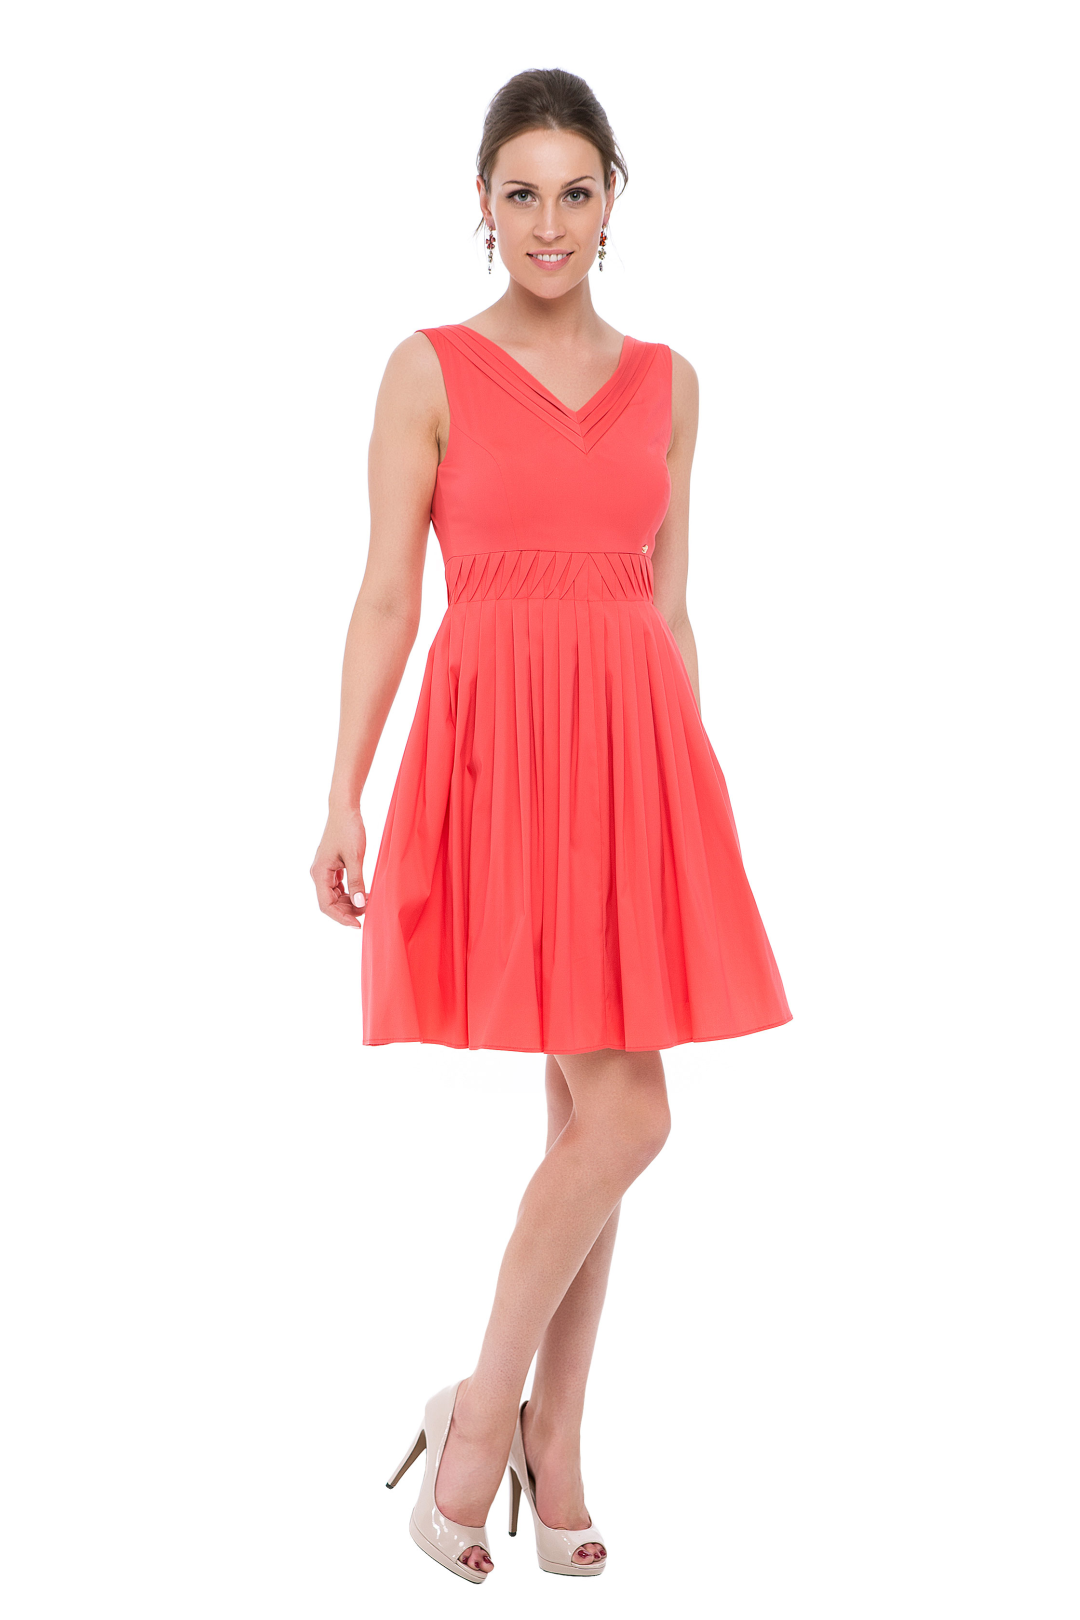 Coral Pink Frilled Dress